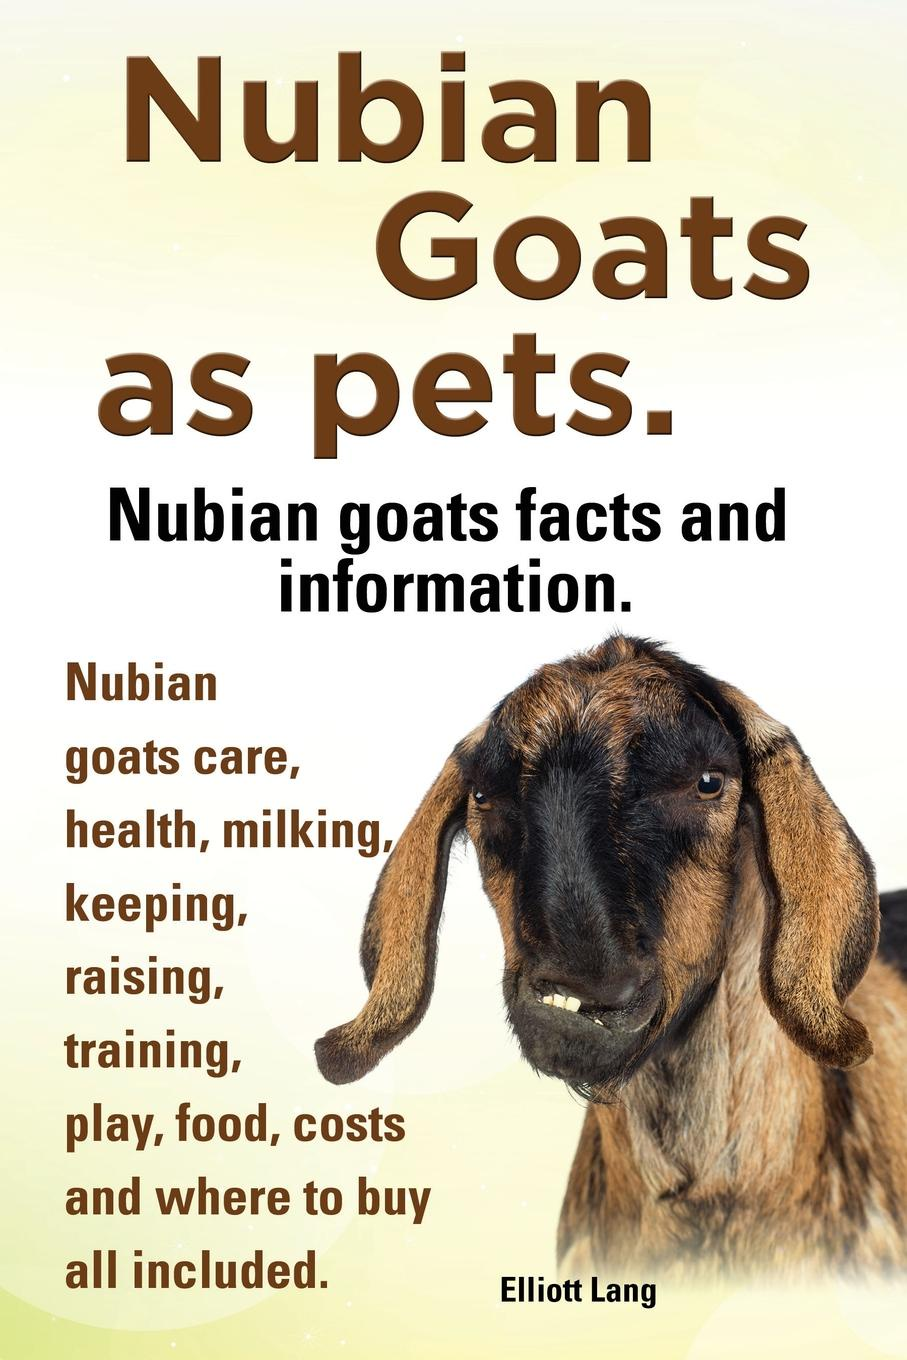 Elliott Lang Nubian Goats as Pets. Nubian Goats Facts and Information. Nubian Goats Care, Health, Milking, Keeping, Raising, Training, Play, Food, Costs and Where smith cheryl k raising goats for dummies